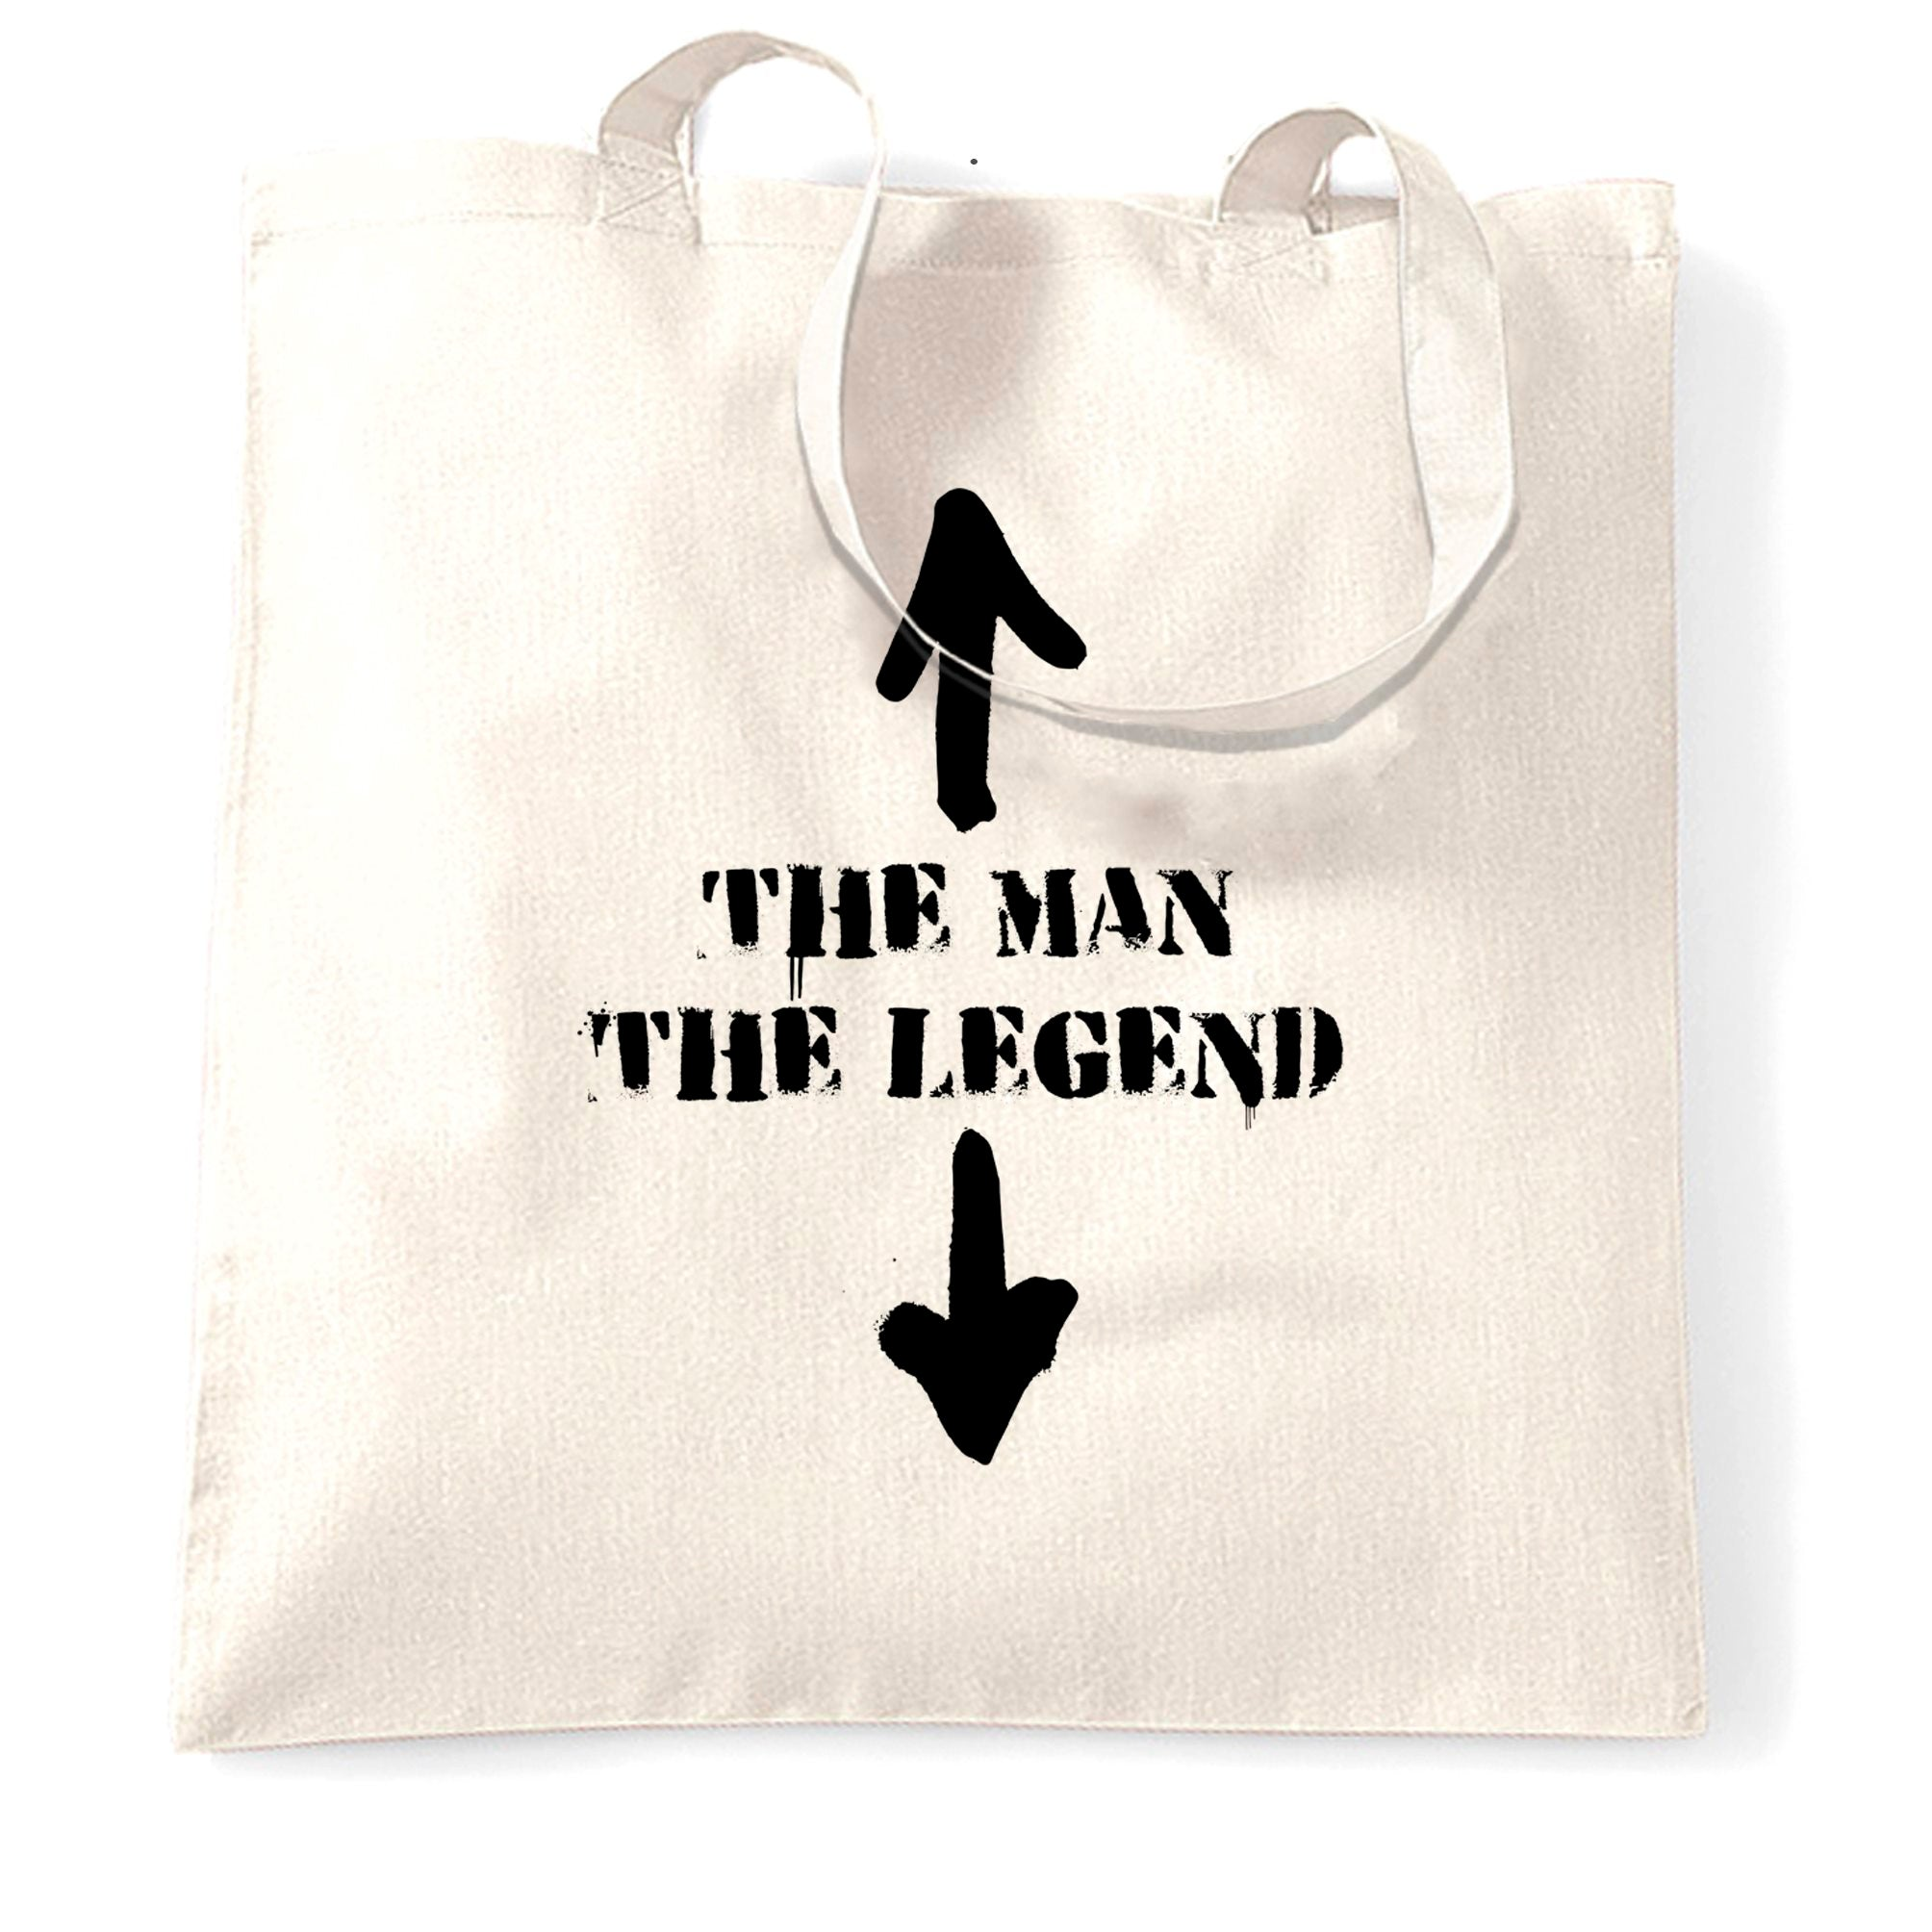 Cool Tote Bag The Man, The Legend Novelty Funny Slogan